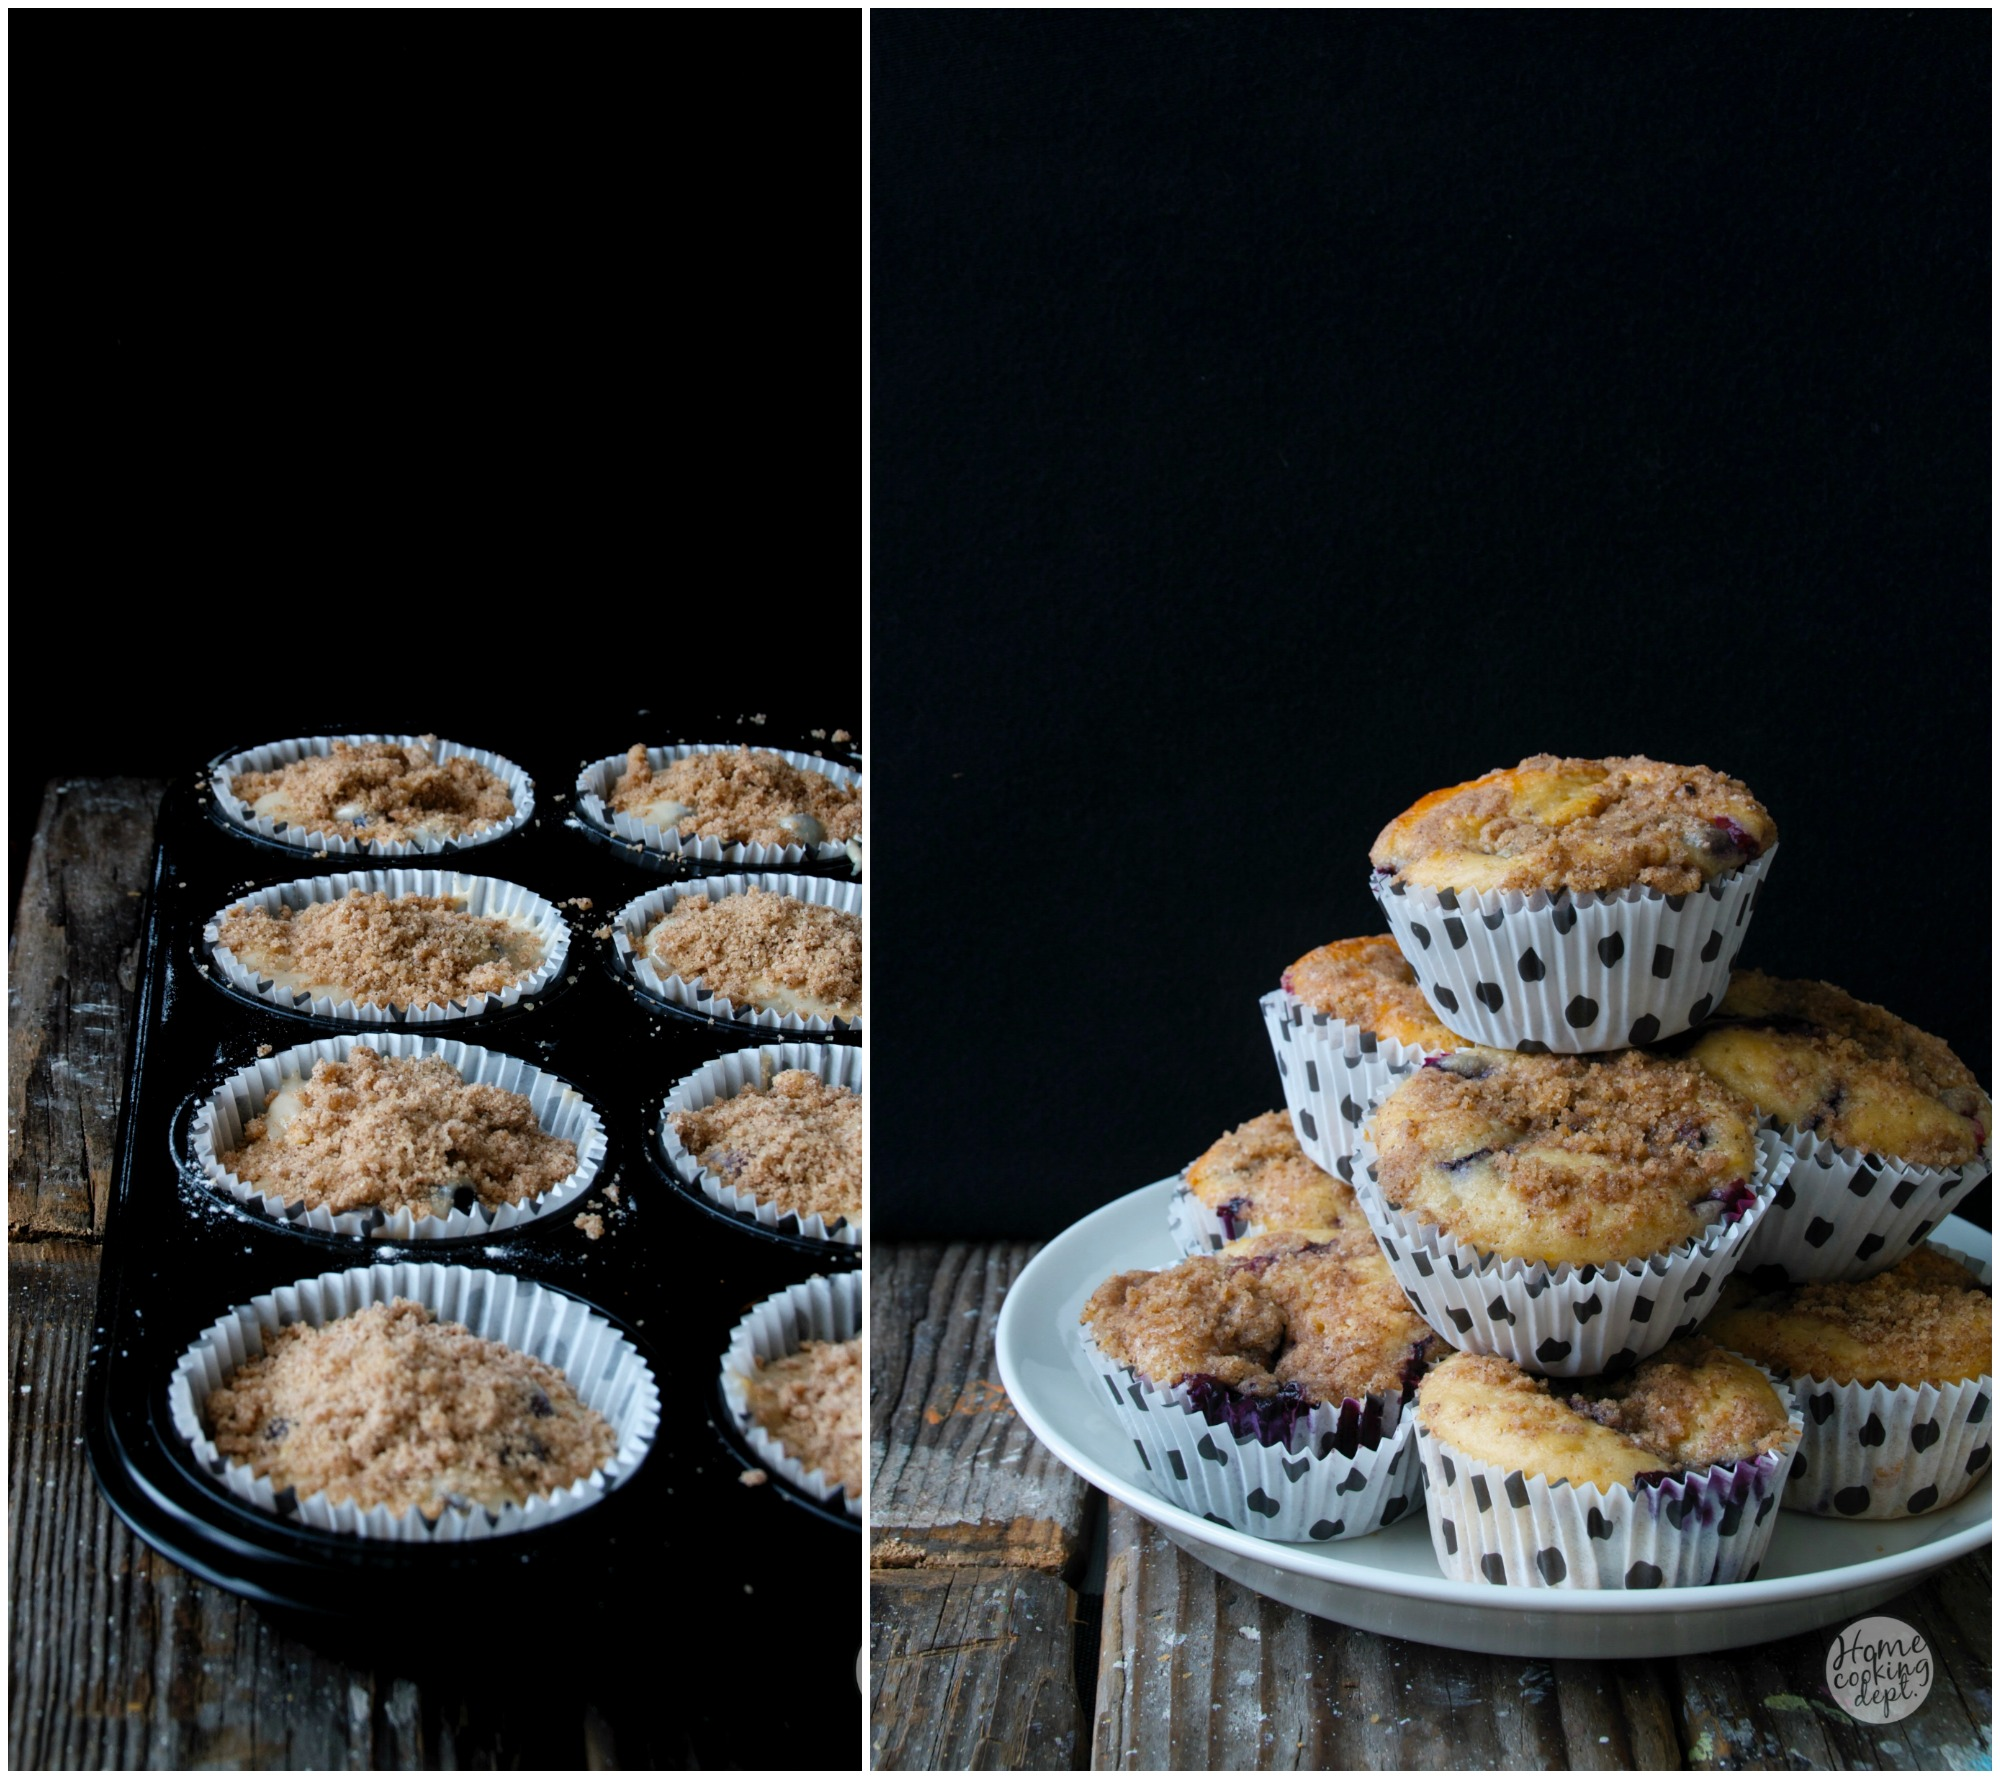 Ontbijt muffin collage / Homecooking dept.